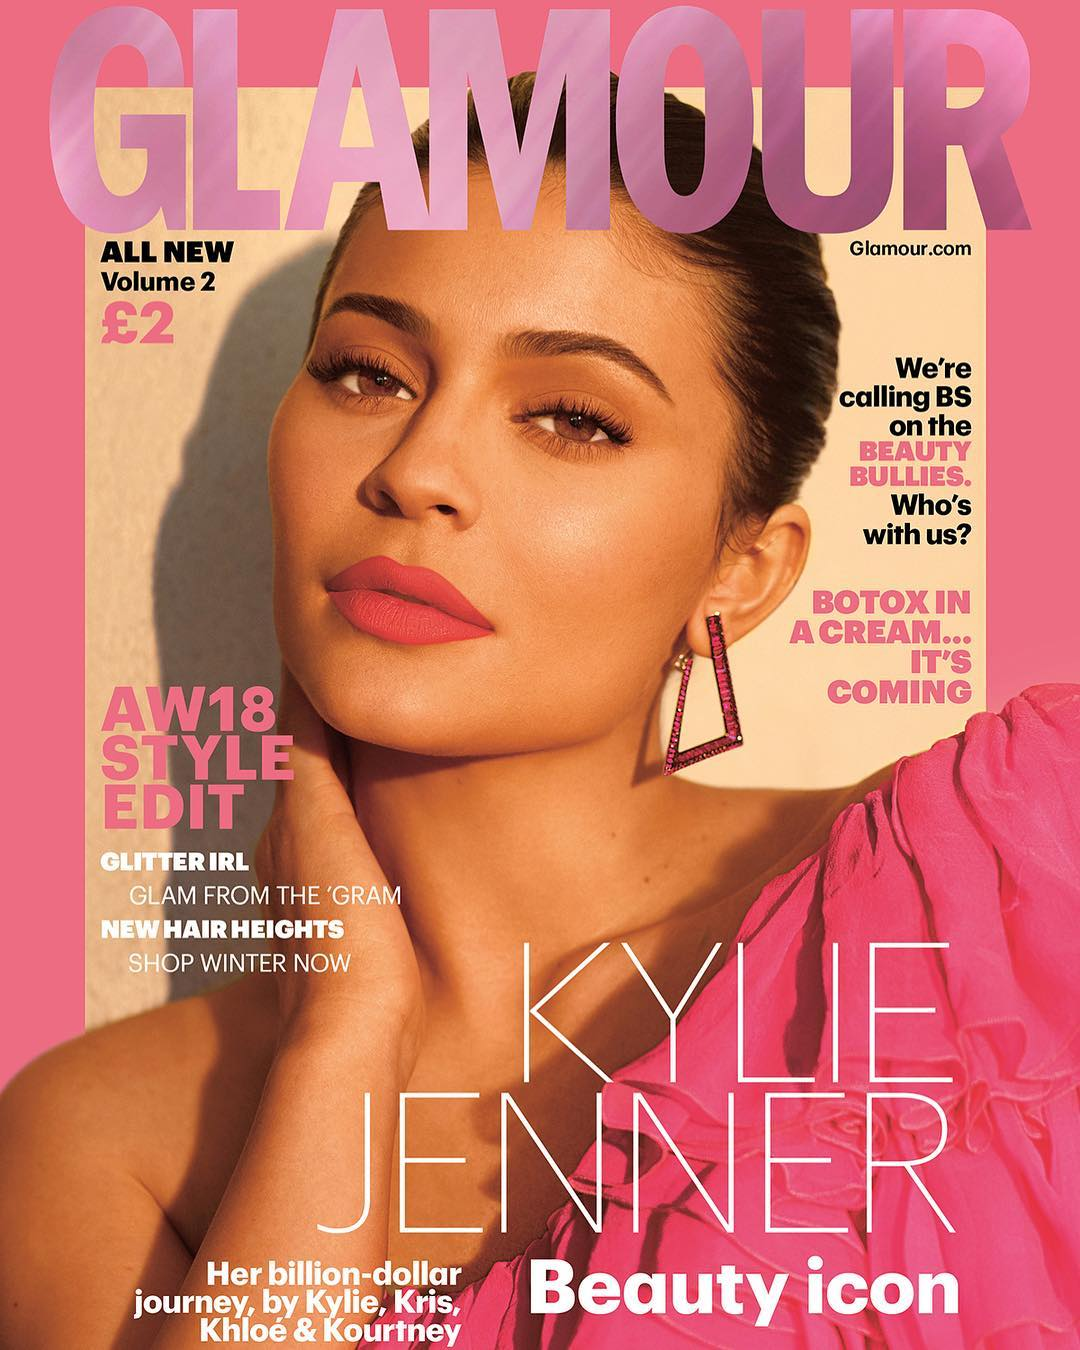 Kylie Jenner Is The Cover Girl For The Biannual Autumn Winter Issue